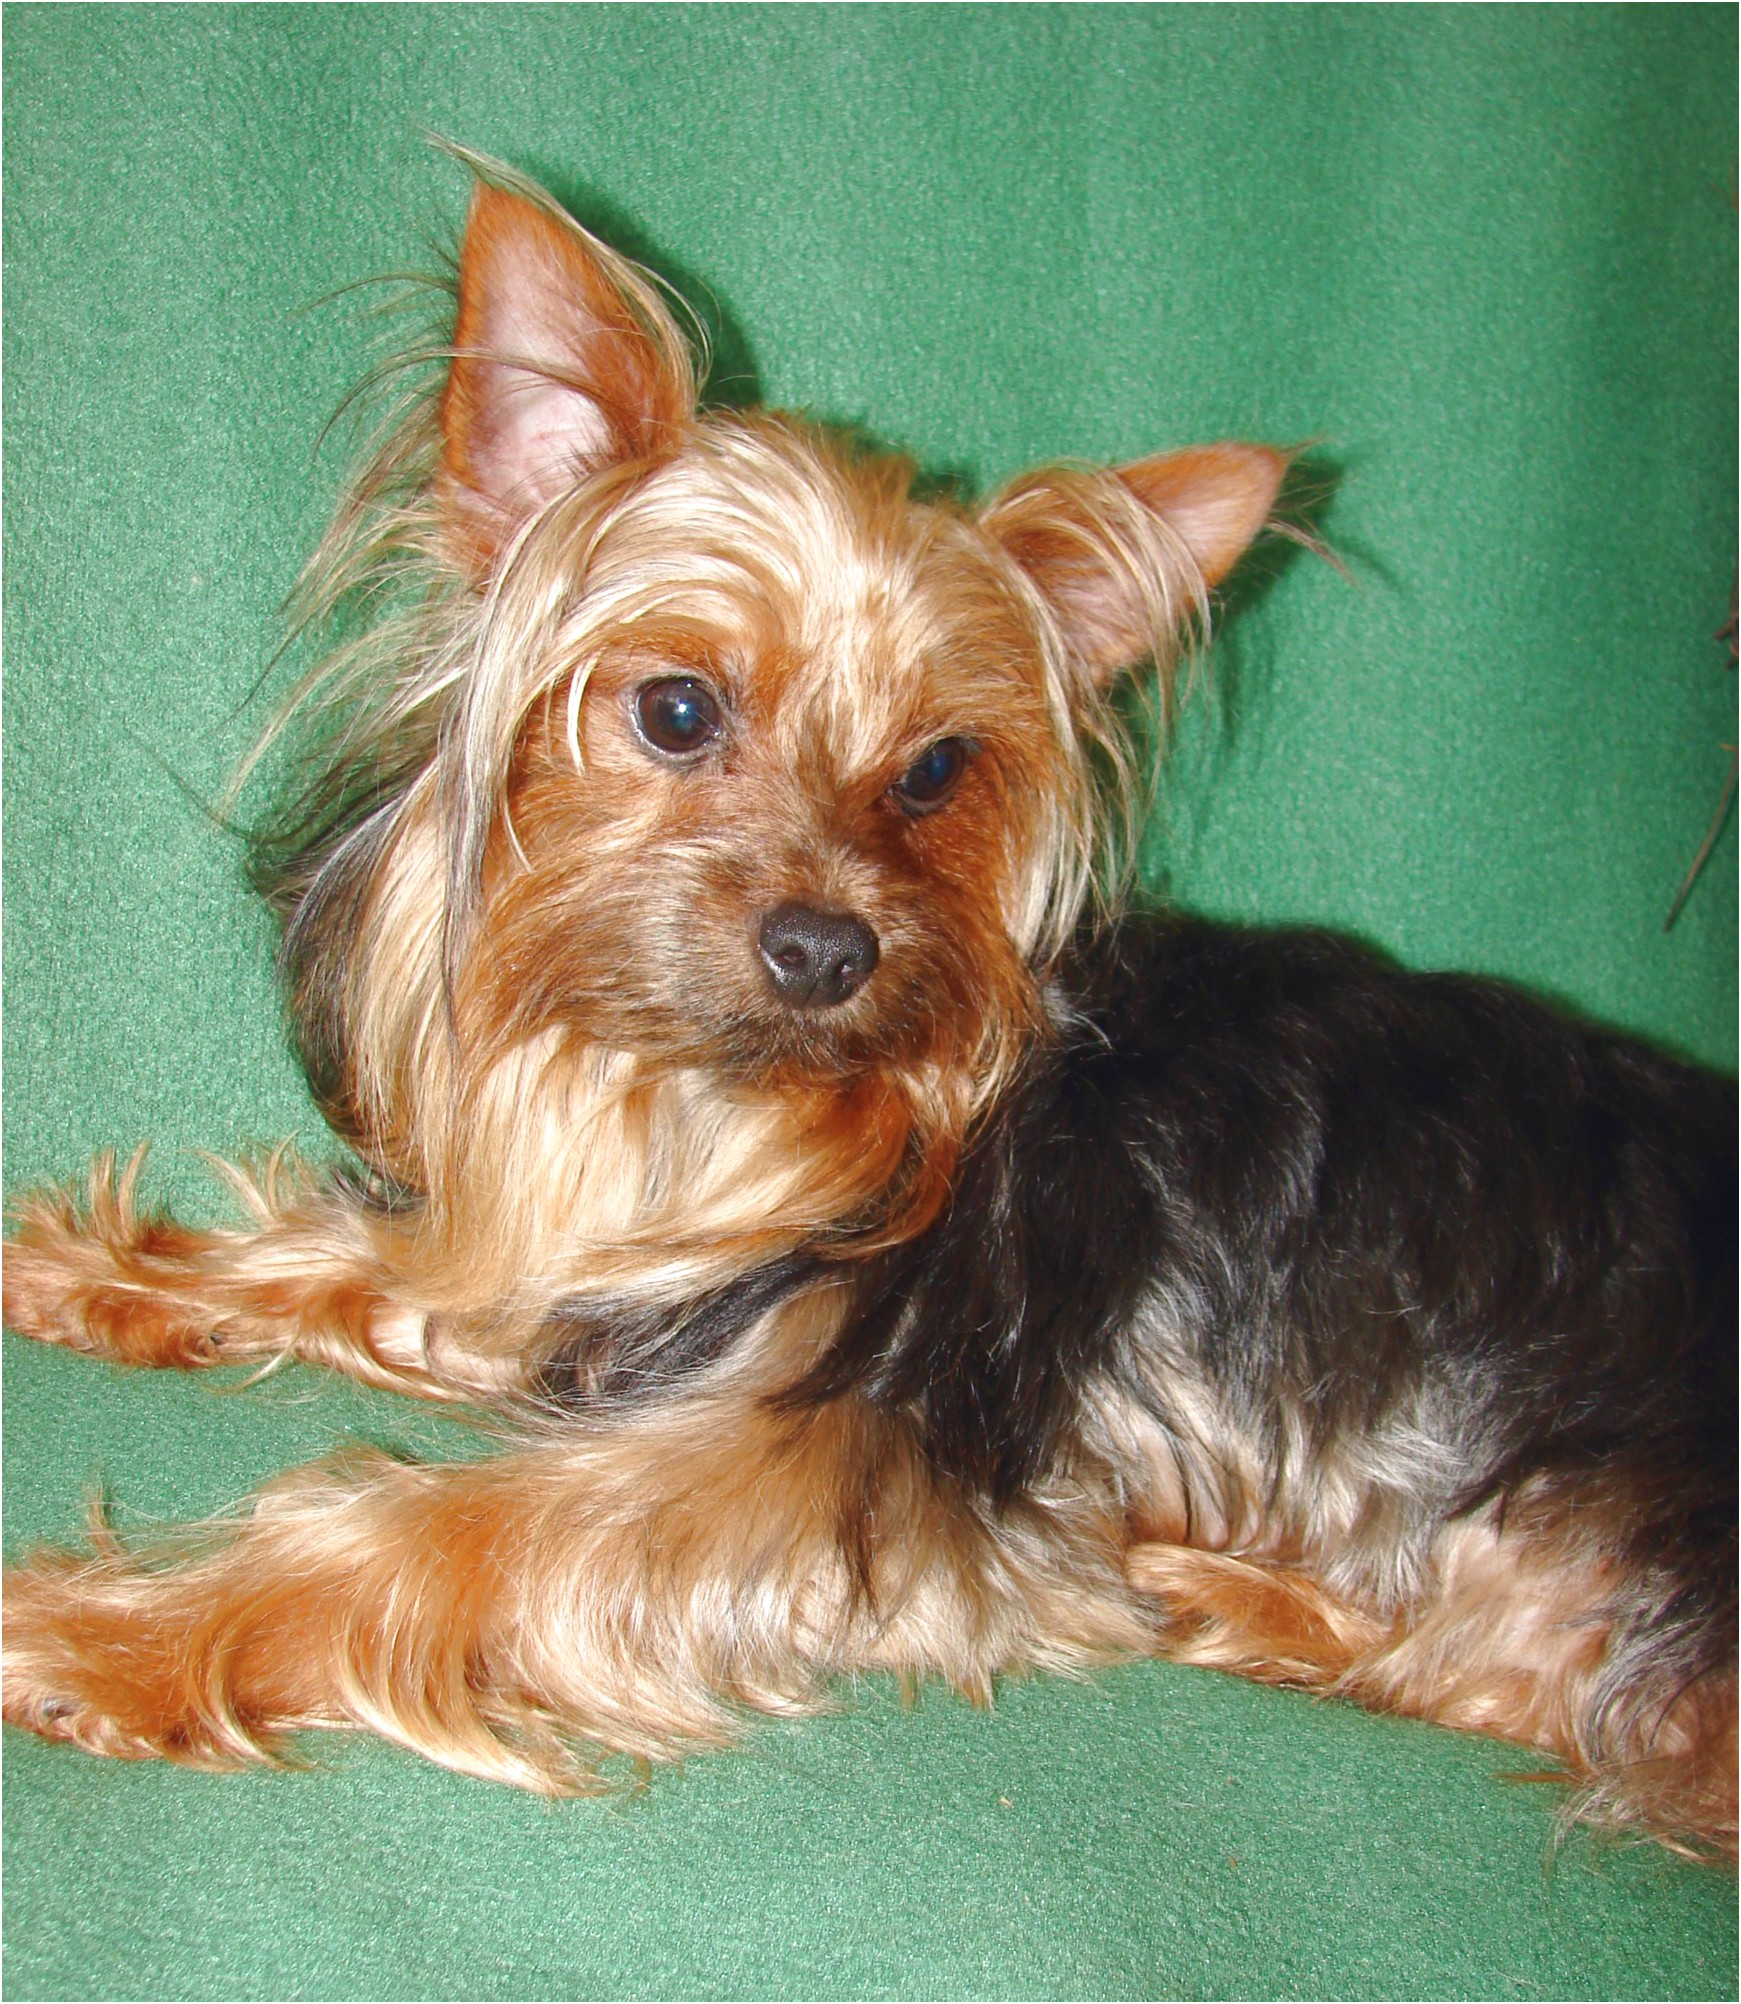 yorkshire terrier adoption melbourne